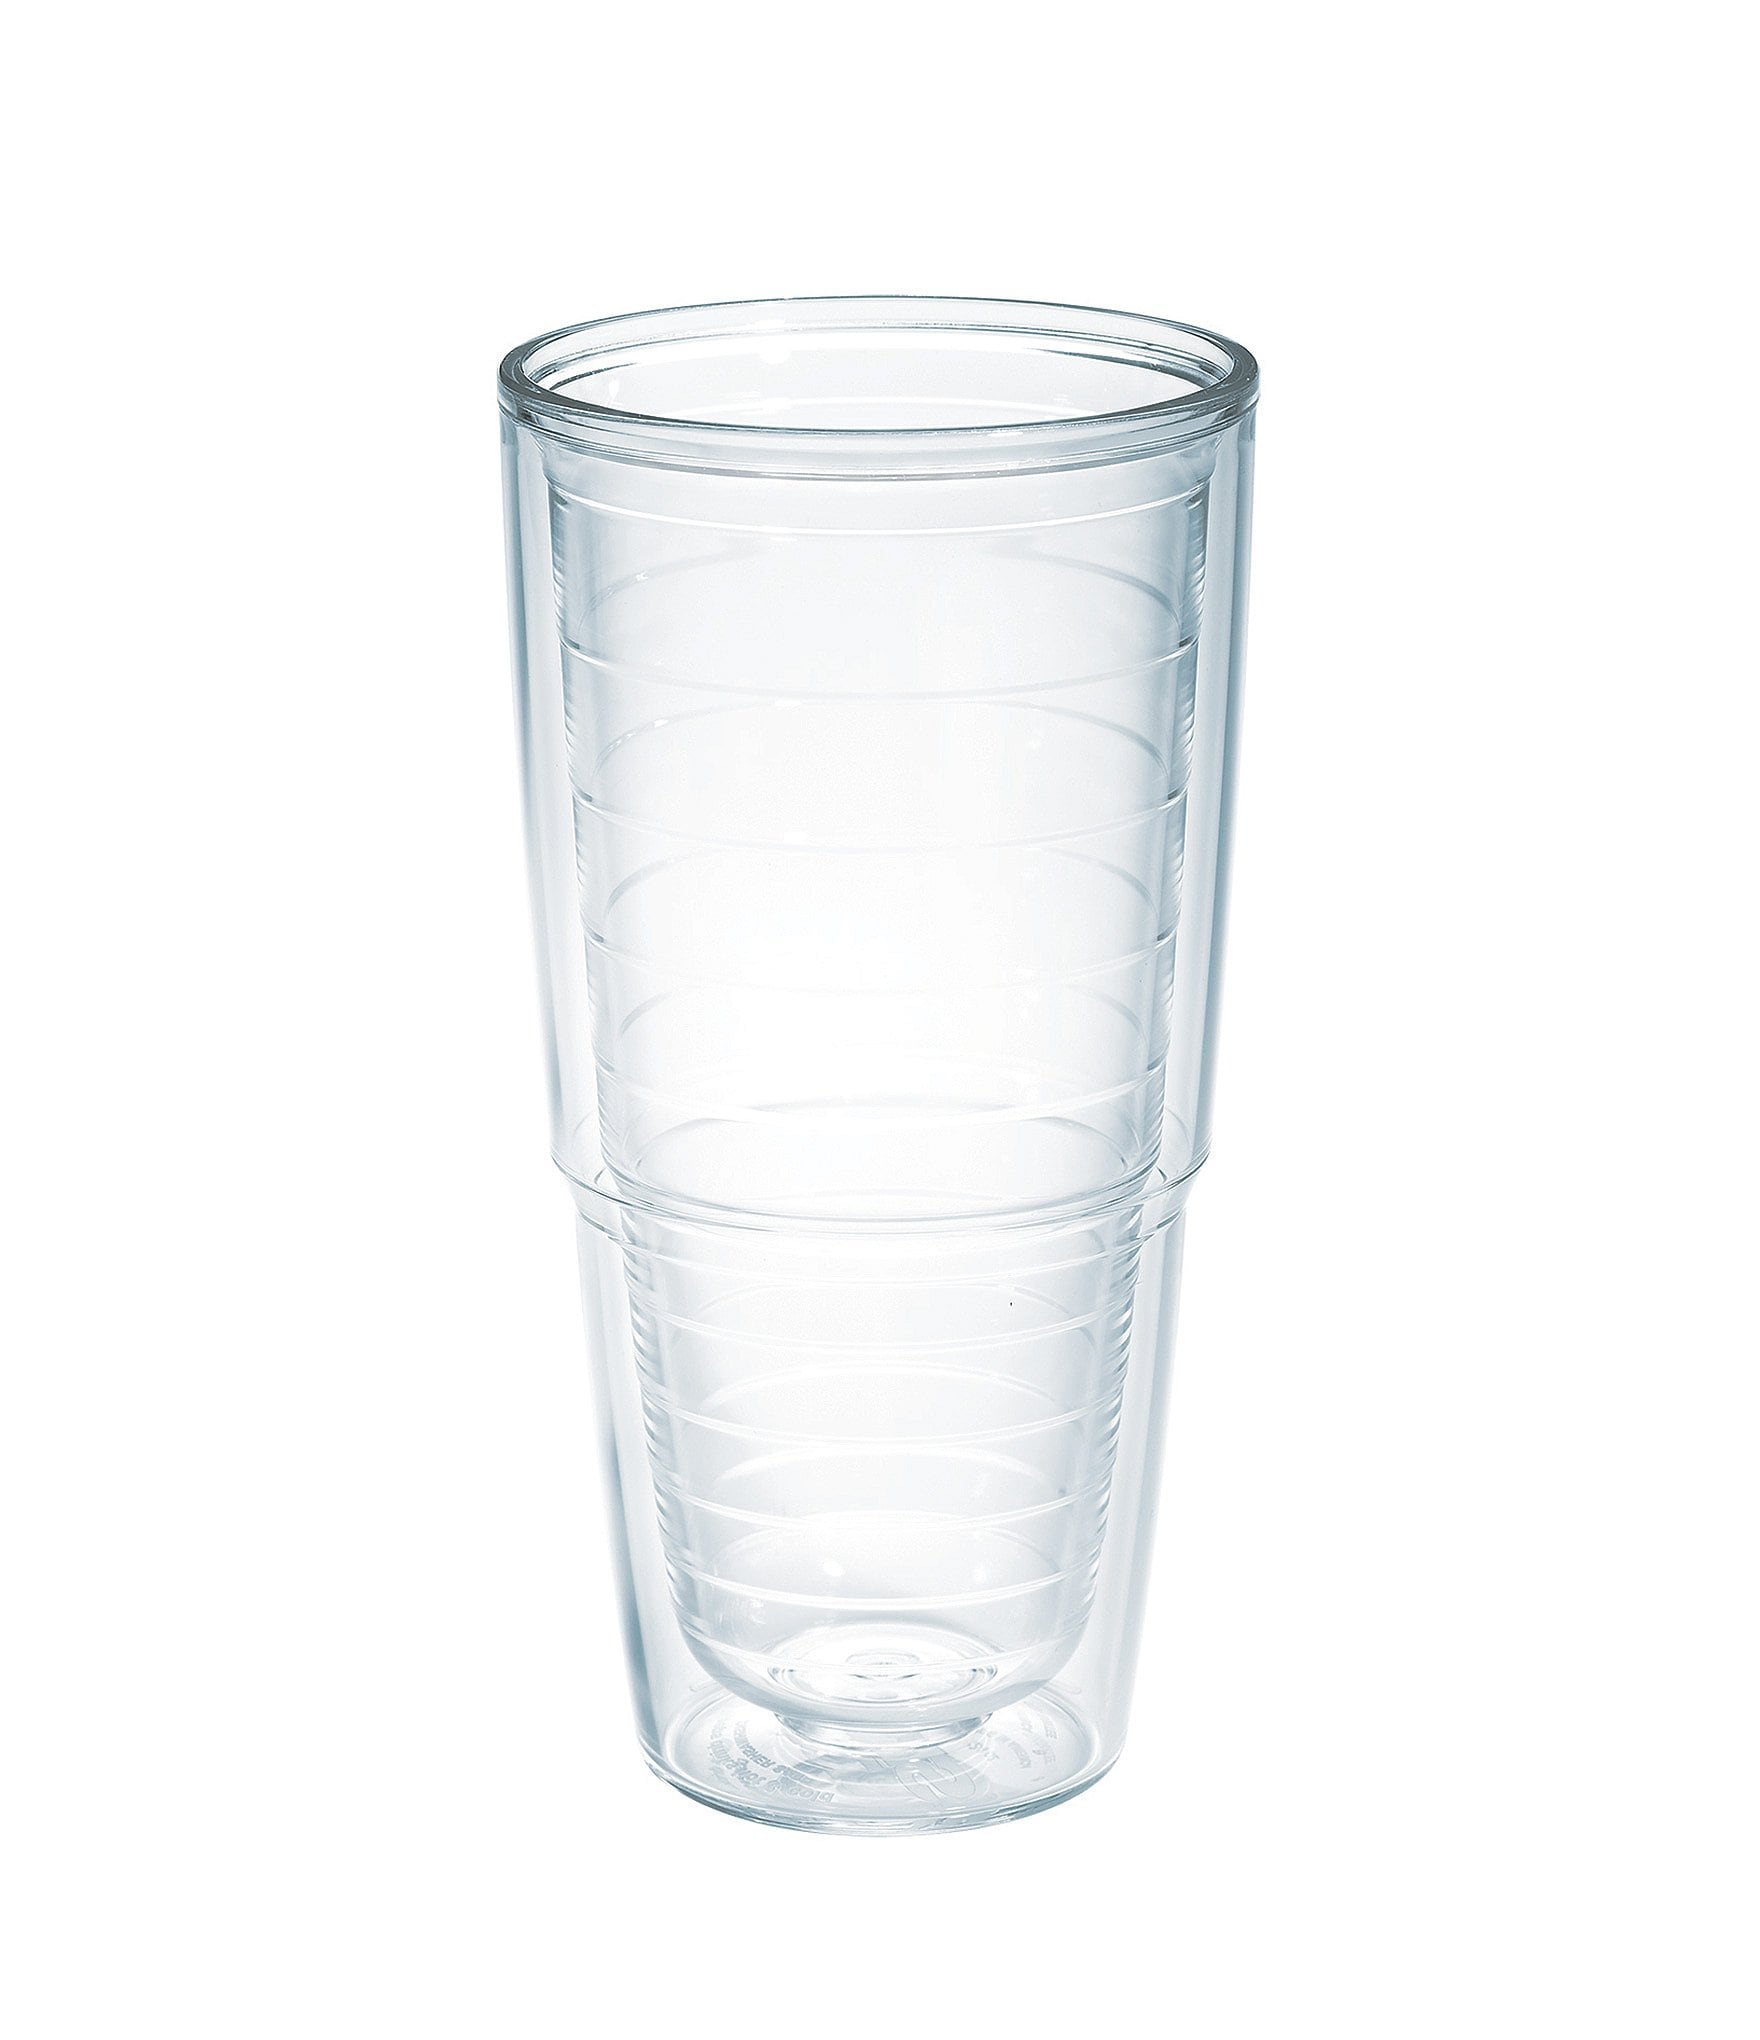 Tervis Tumblers Double-Walled Tumbler | Dillards